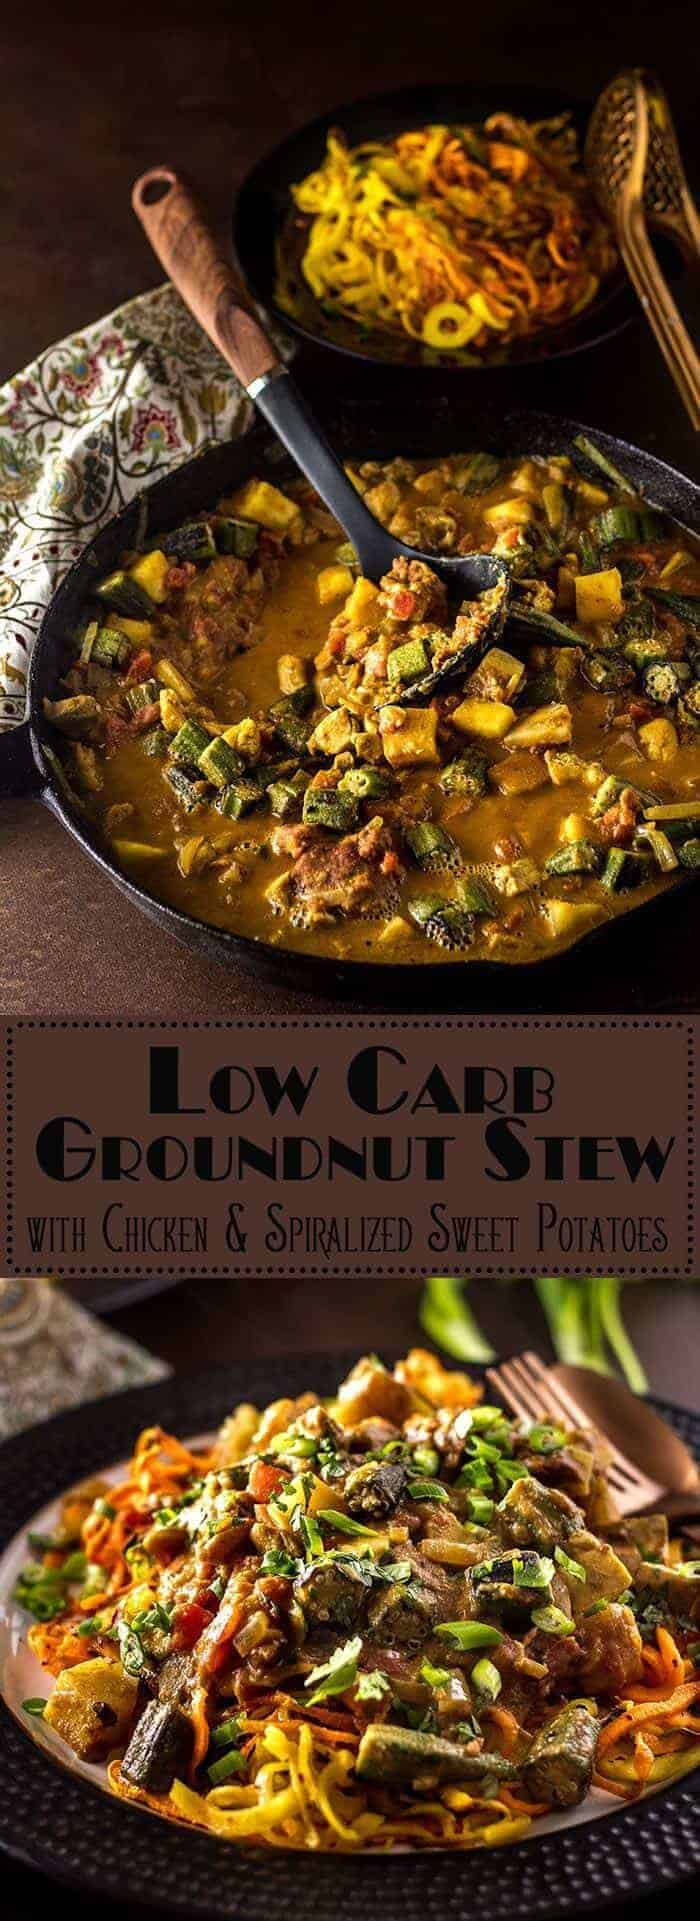 Low Carb Groundnut Stew Long Pin